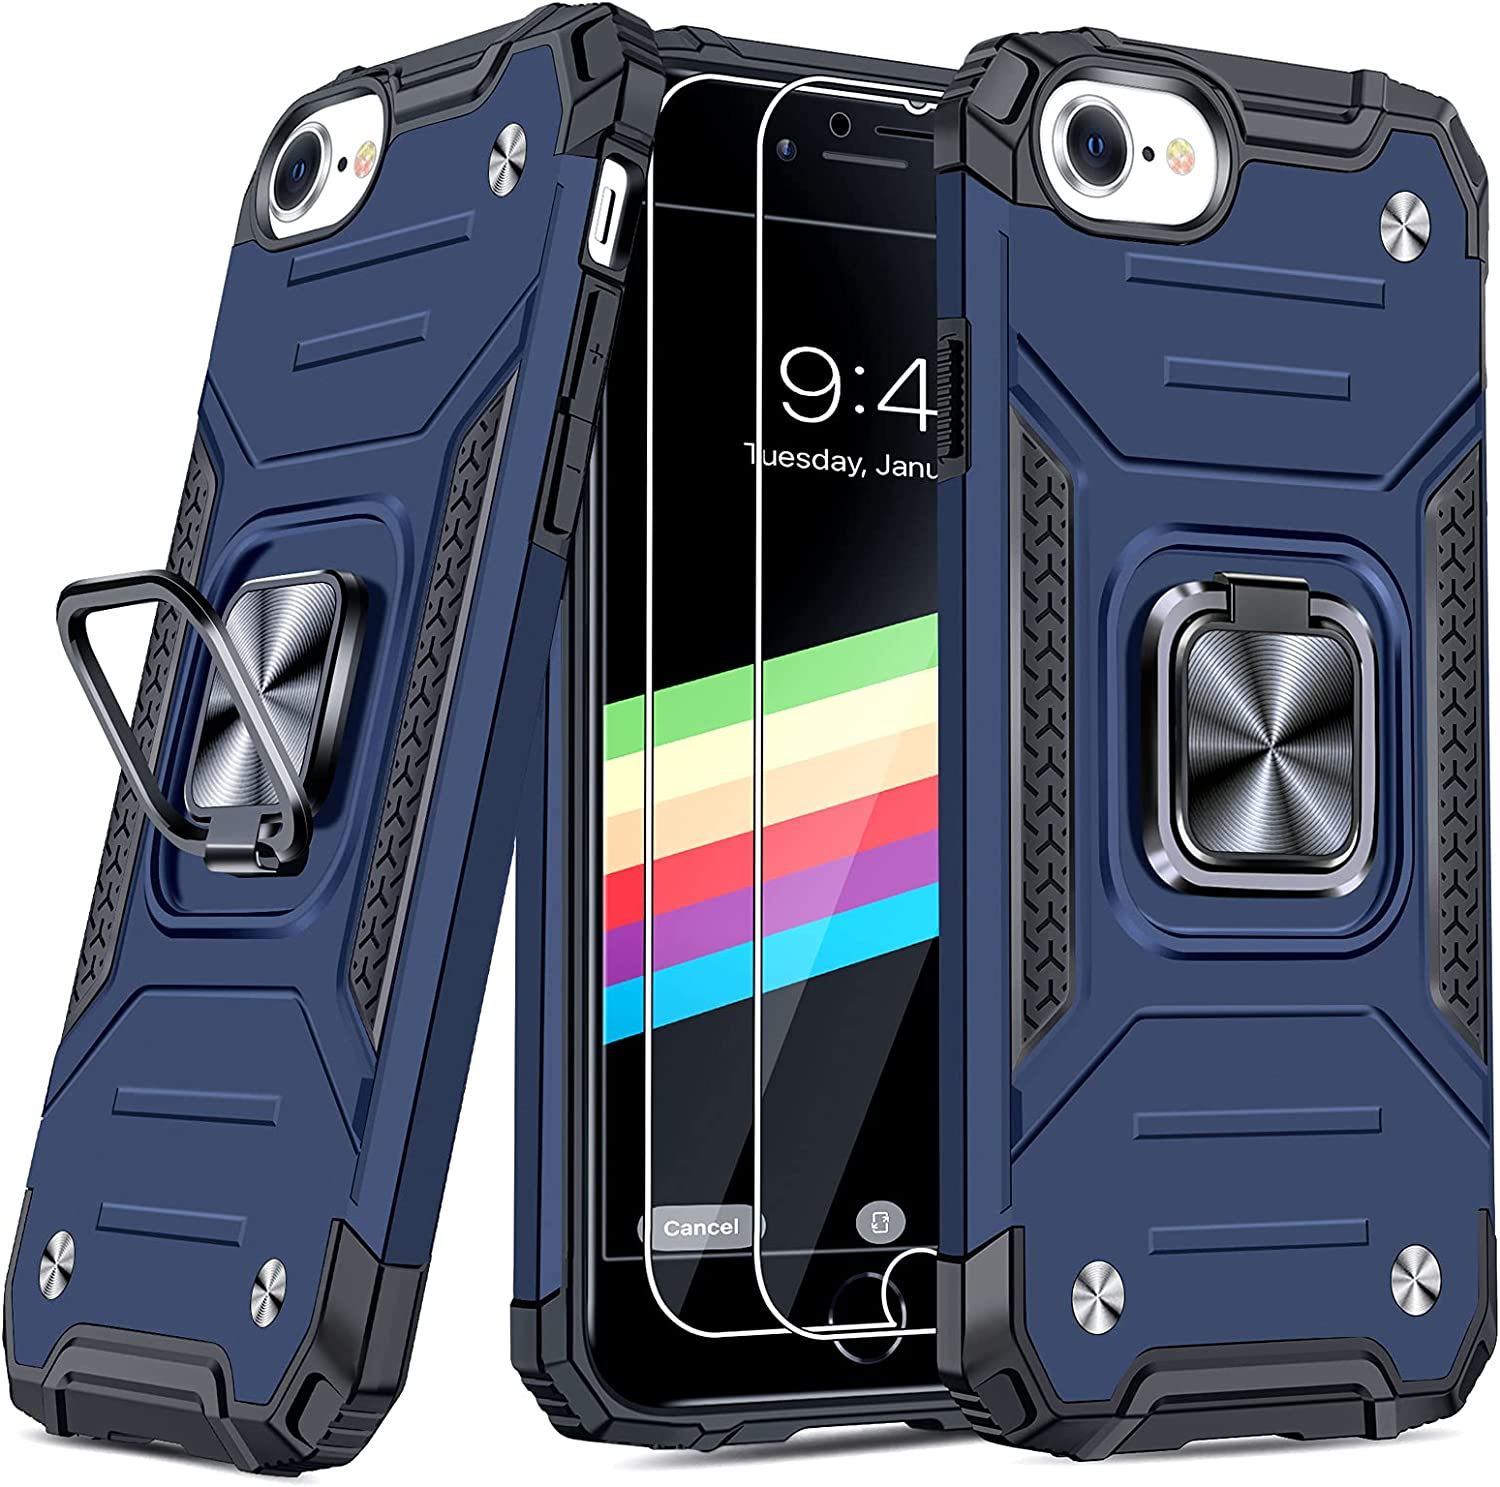 """JAME Case for iPhone SE 2020 Case with Screen Protector 2Pcs, for iPhone 8 Case, for iPhone 7 Case, for iPhone 6S/6 Case, Military-Grade Protection, with Ring Kickstand Shockproof Case 4.7"""" Blue"""